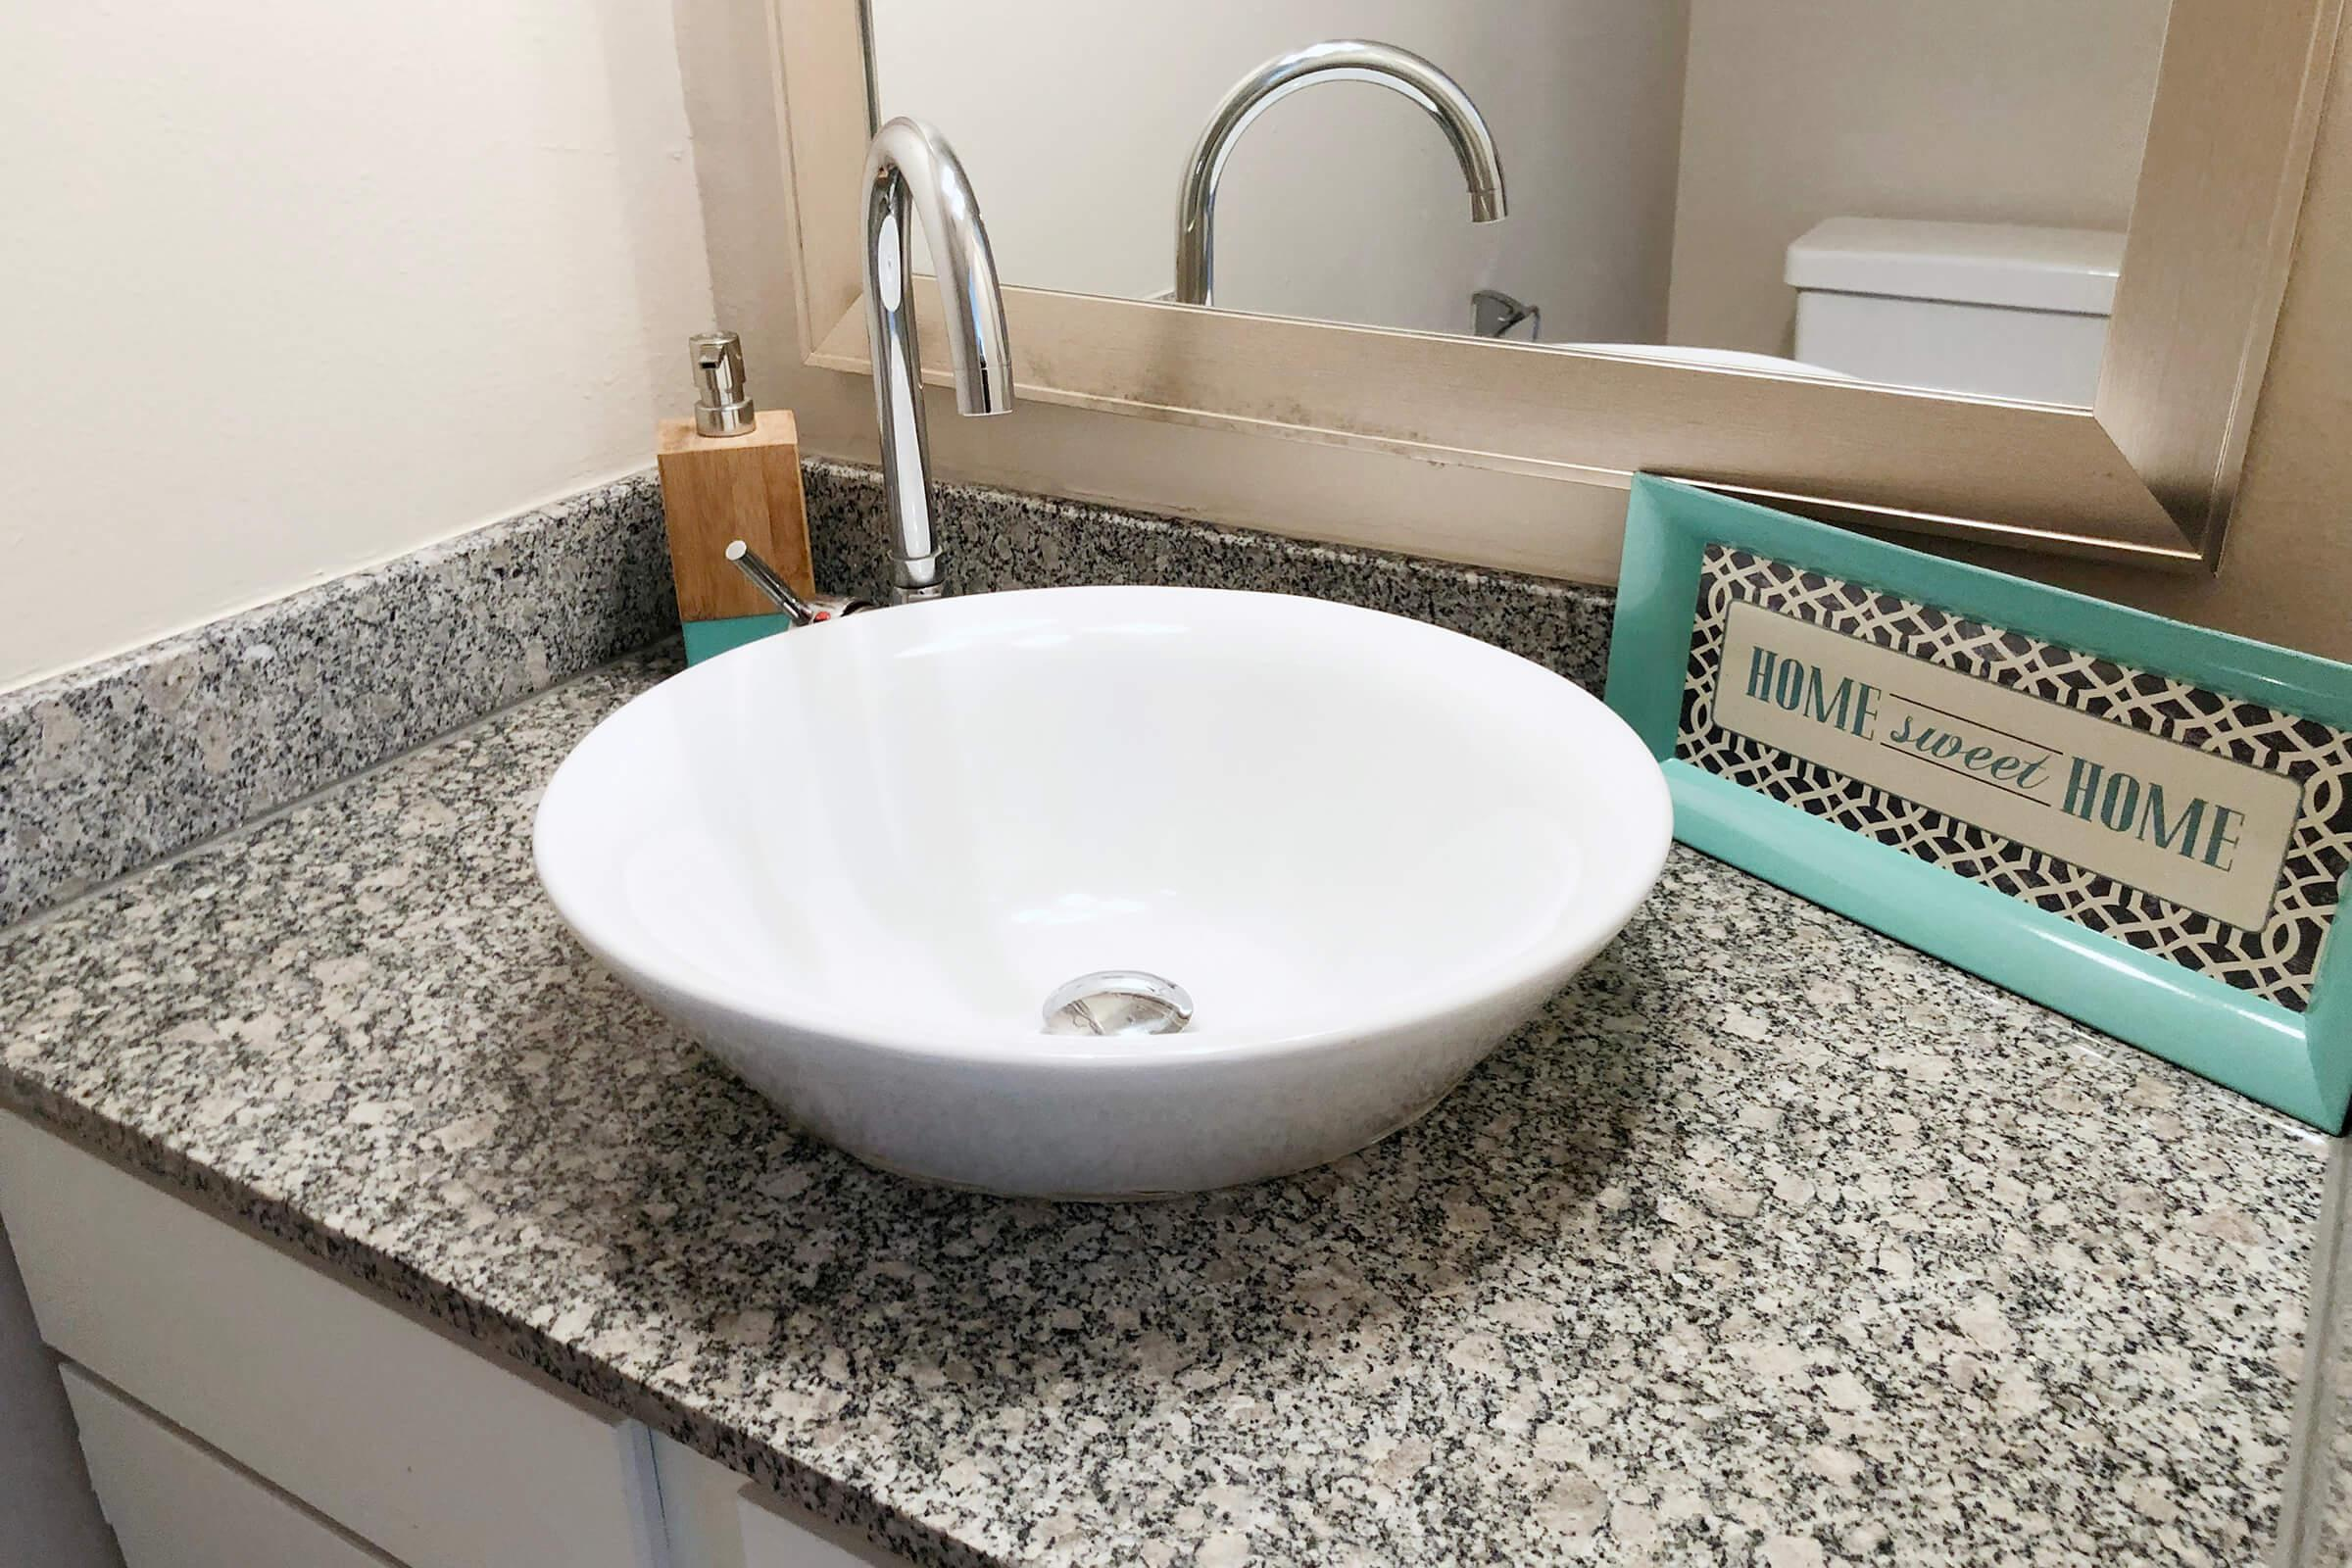 a close up of a bowl sink on a counter